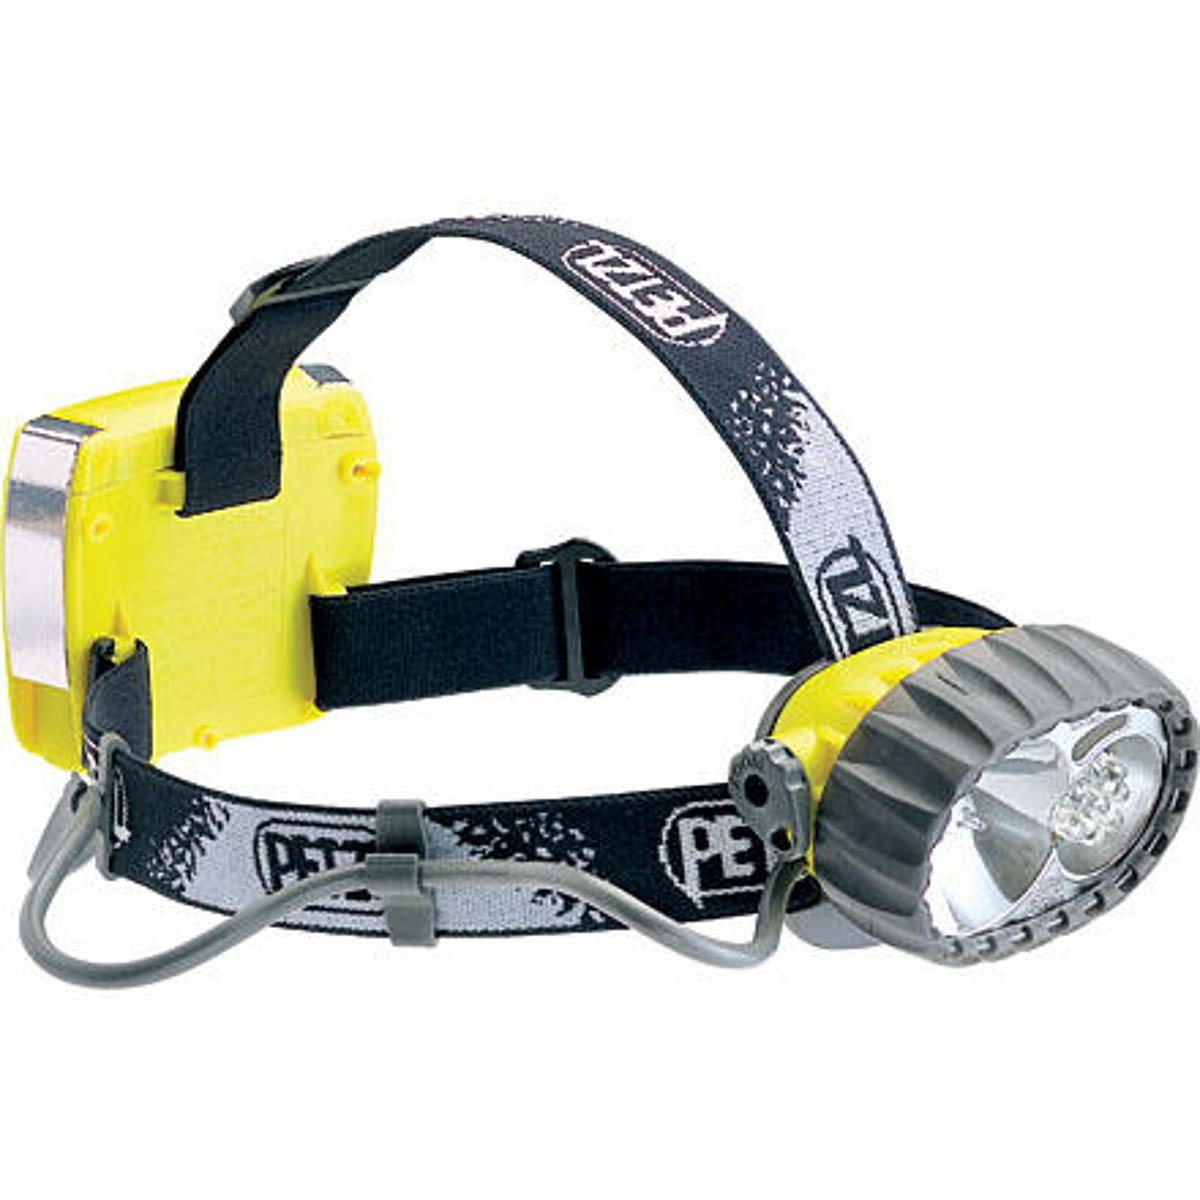 Petzl - DUO LED 5 Headlamp, 40 Lumens, Waterproof to 5 Meters by Petzl